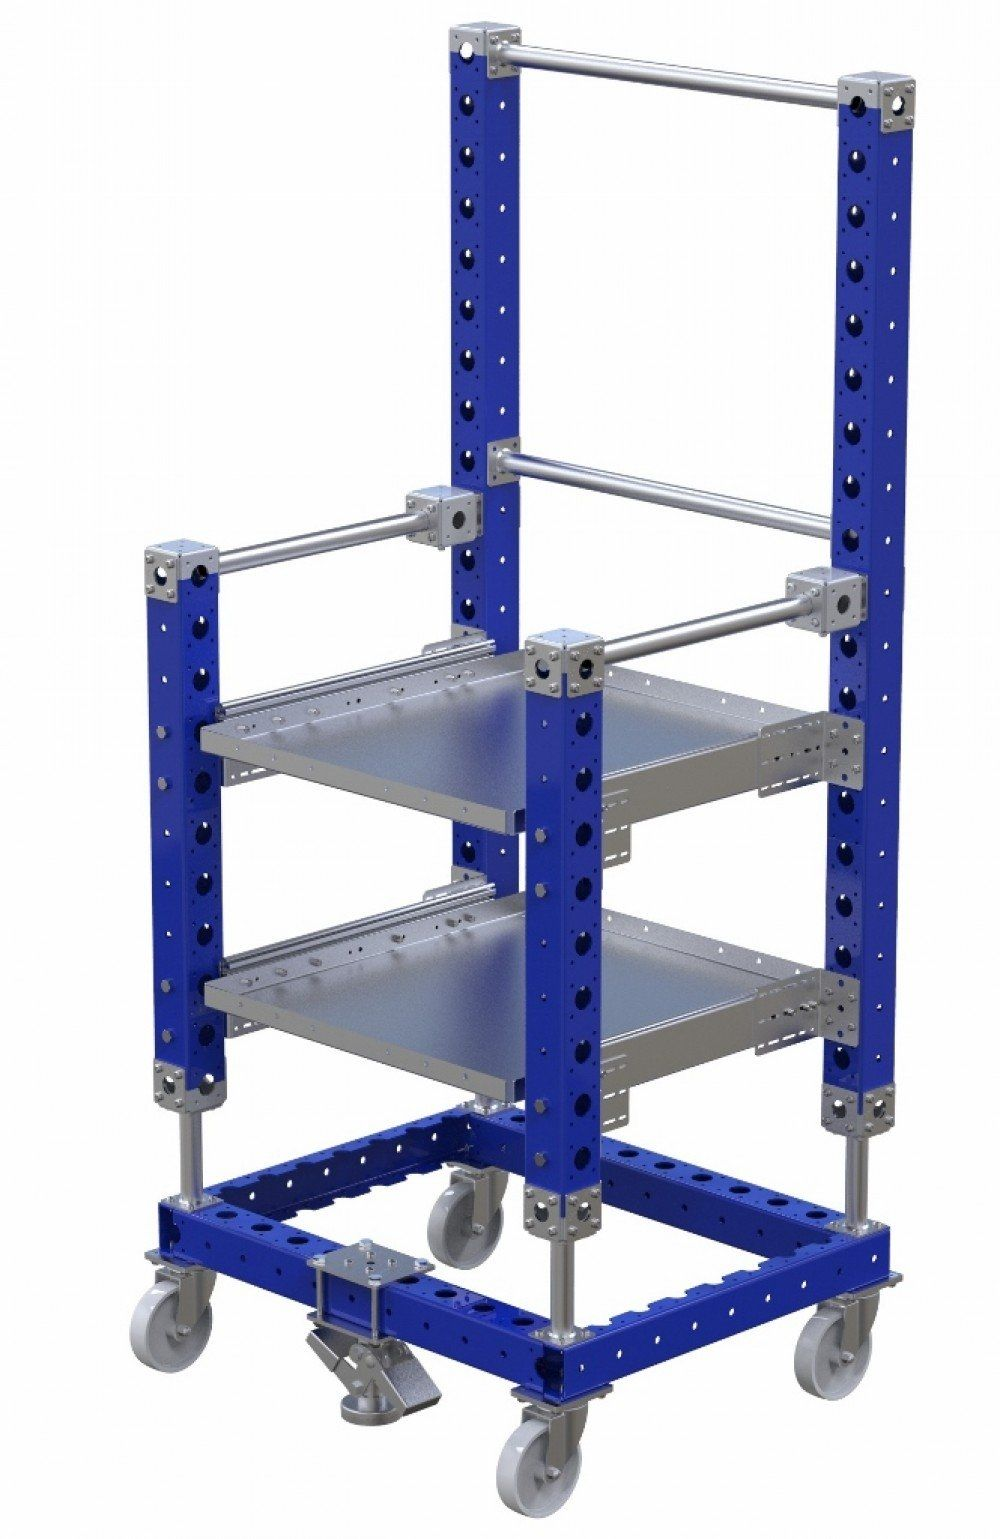 Tool cart with telescopic shelves by FlexQube